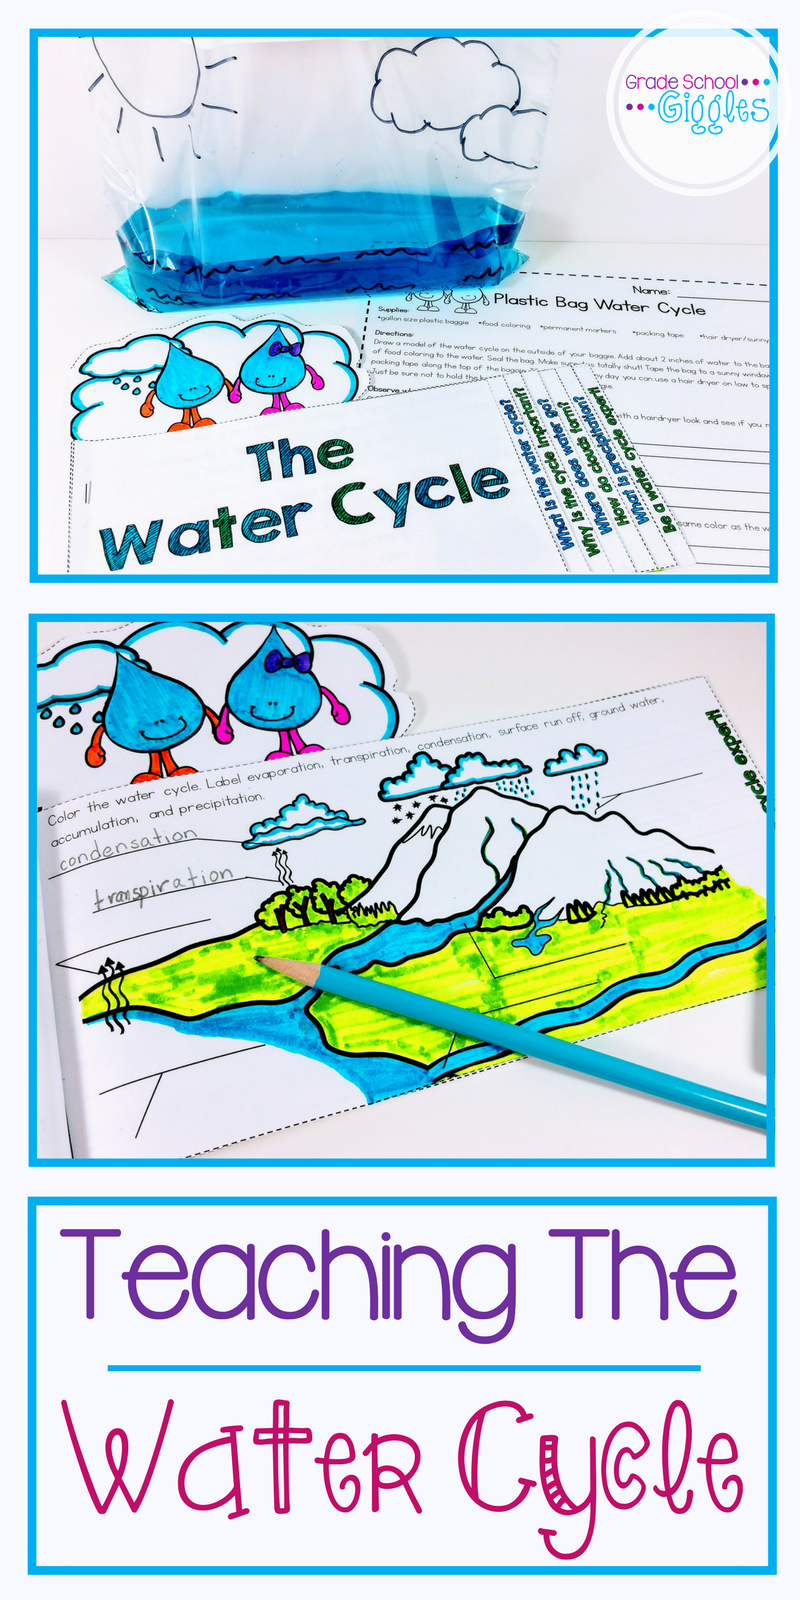 medium resolution of  planning the lesson and prepping activities can take up a lot of time if you want some awesome printables for teaching kids about the water cycle